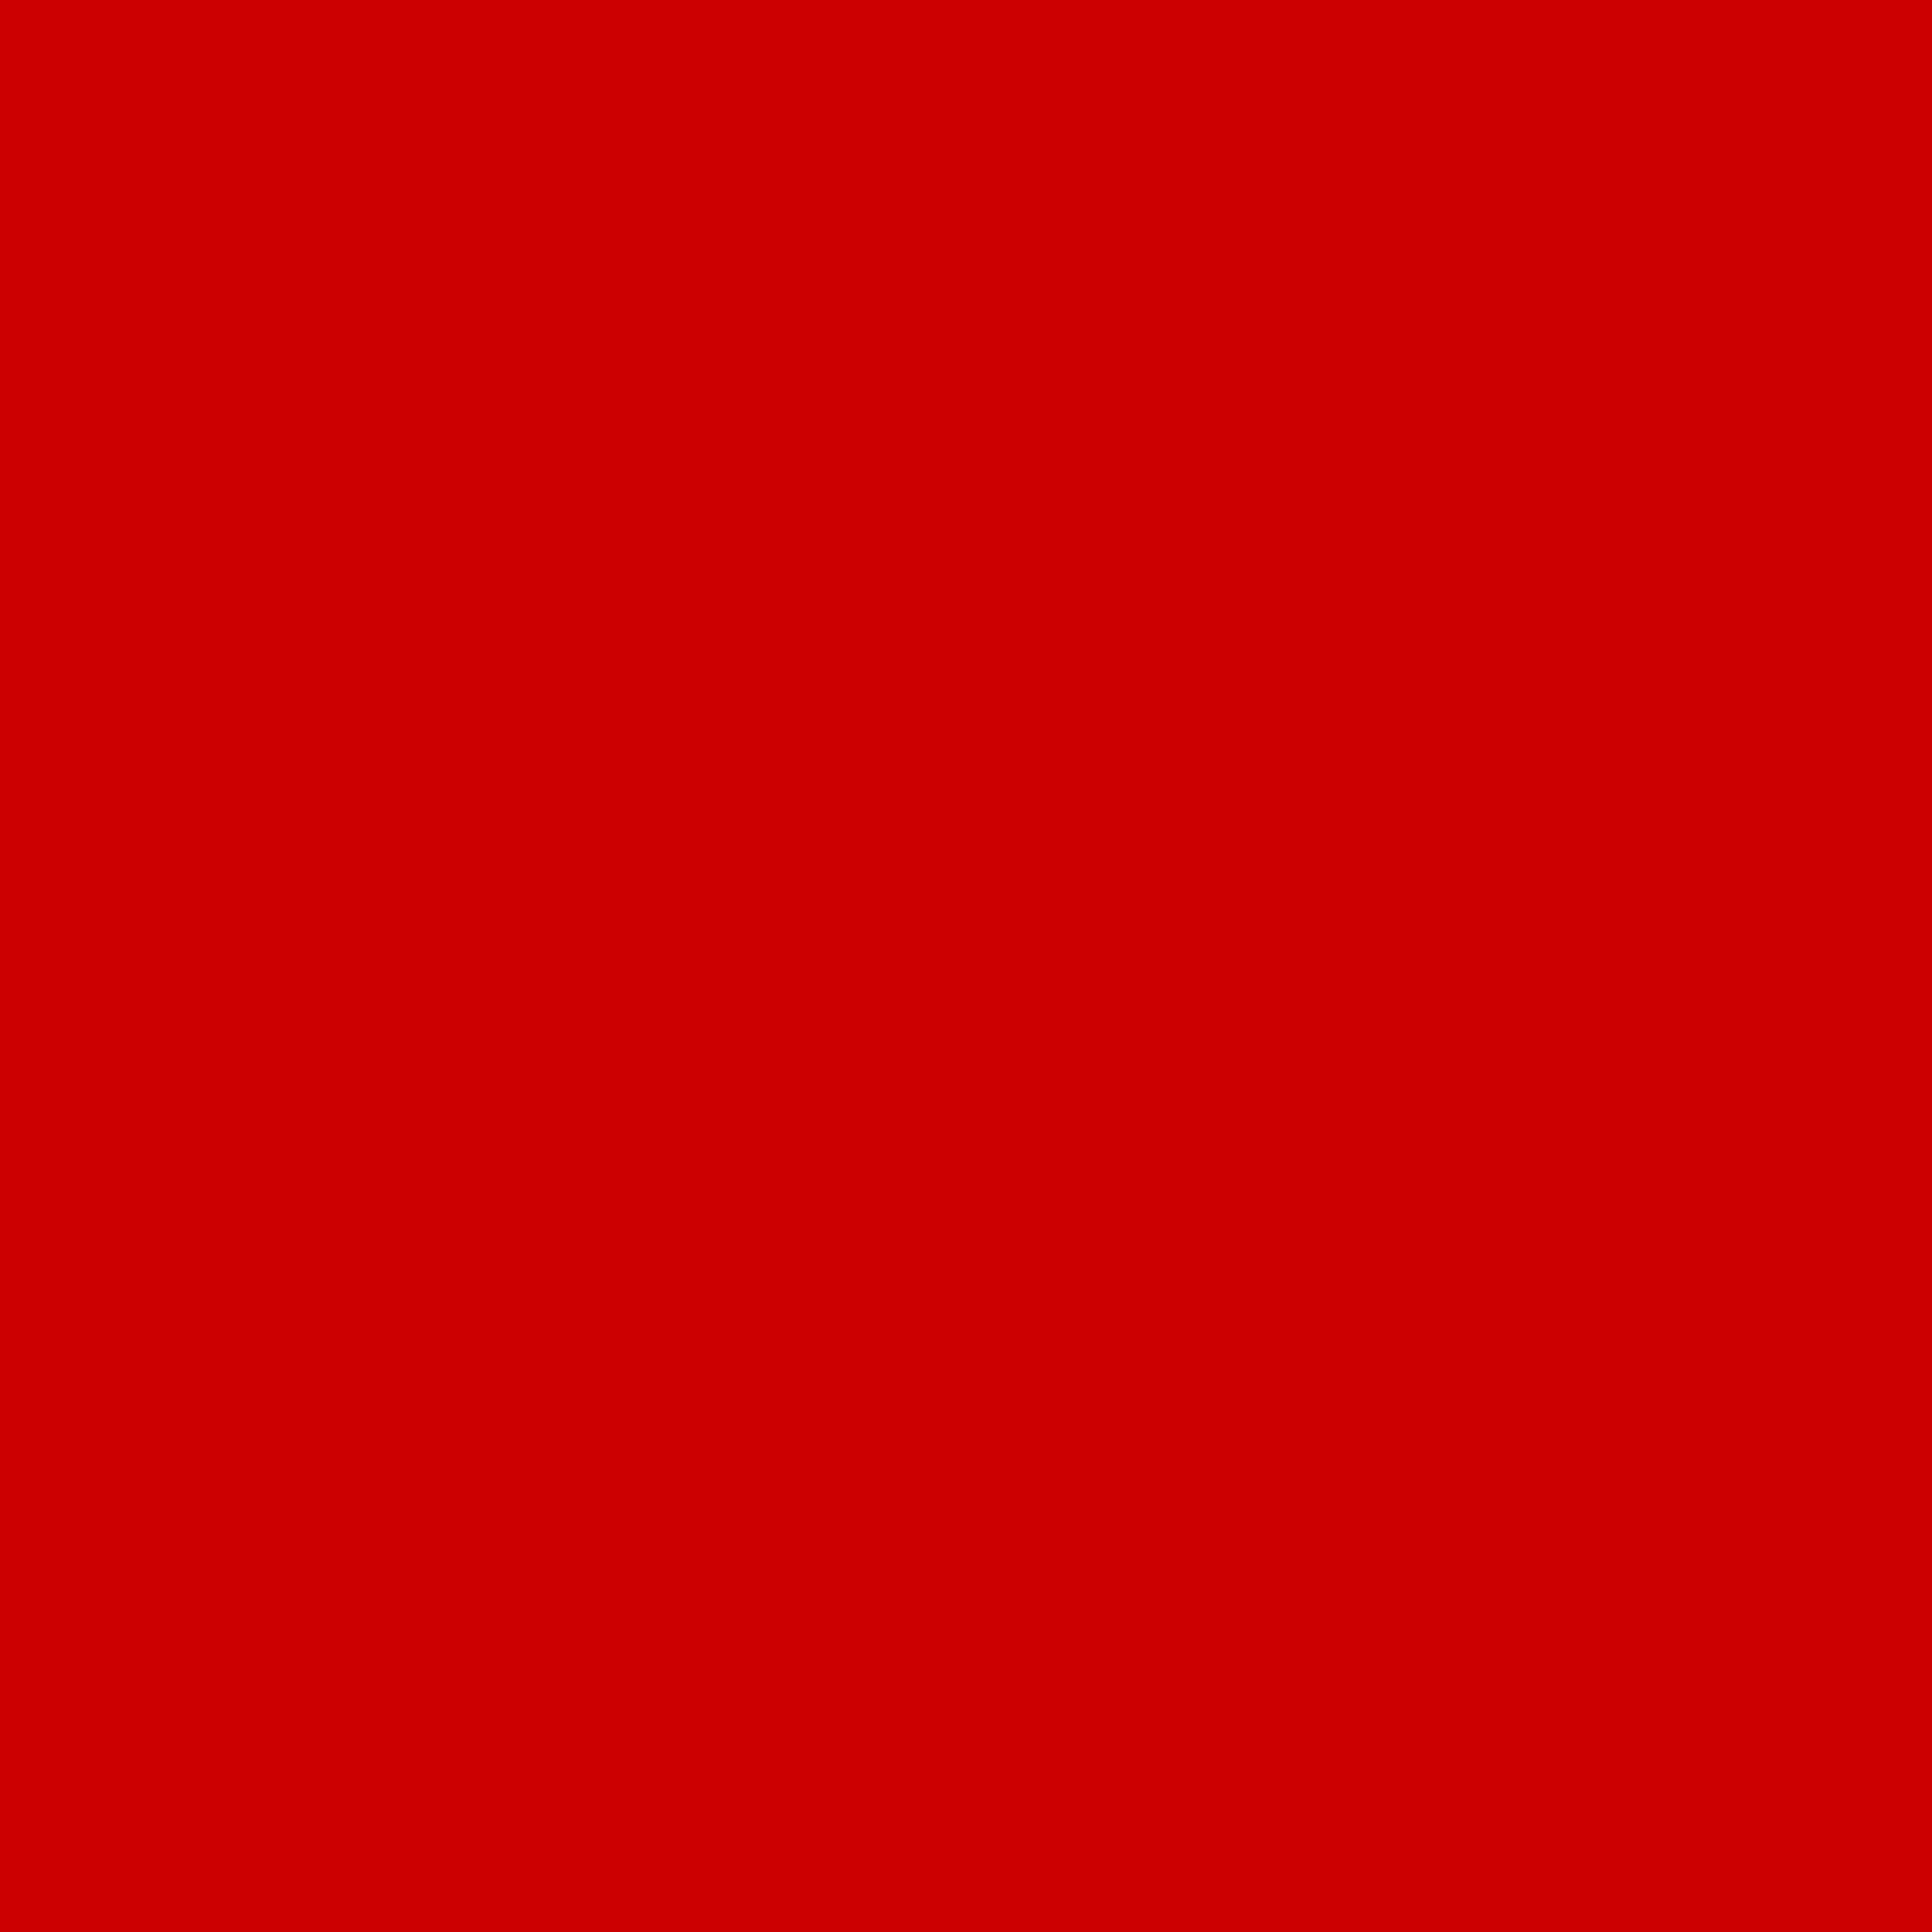 2048x2048 Boston University Red Solid Color Background